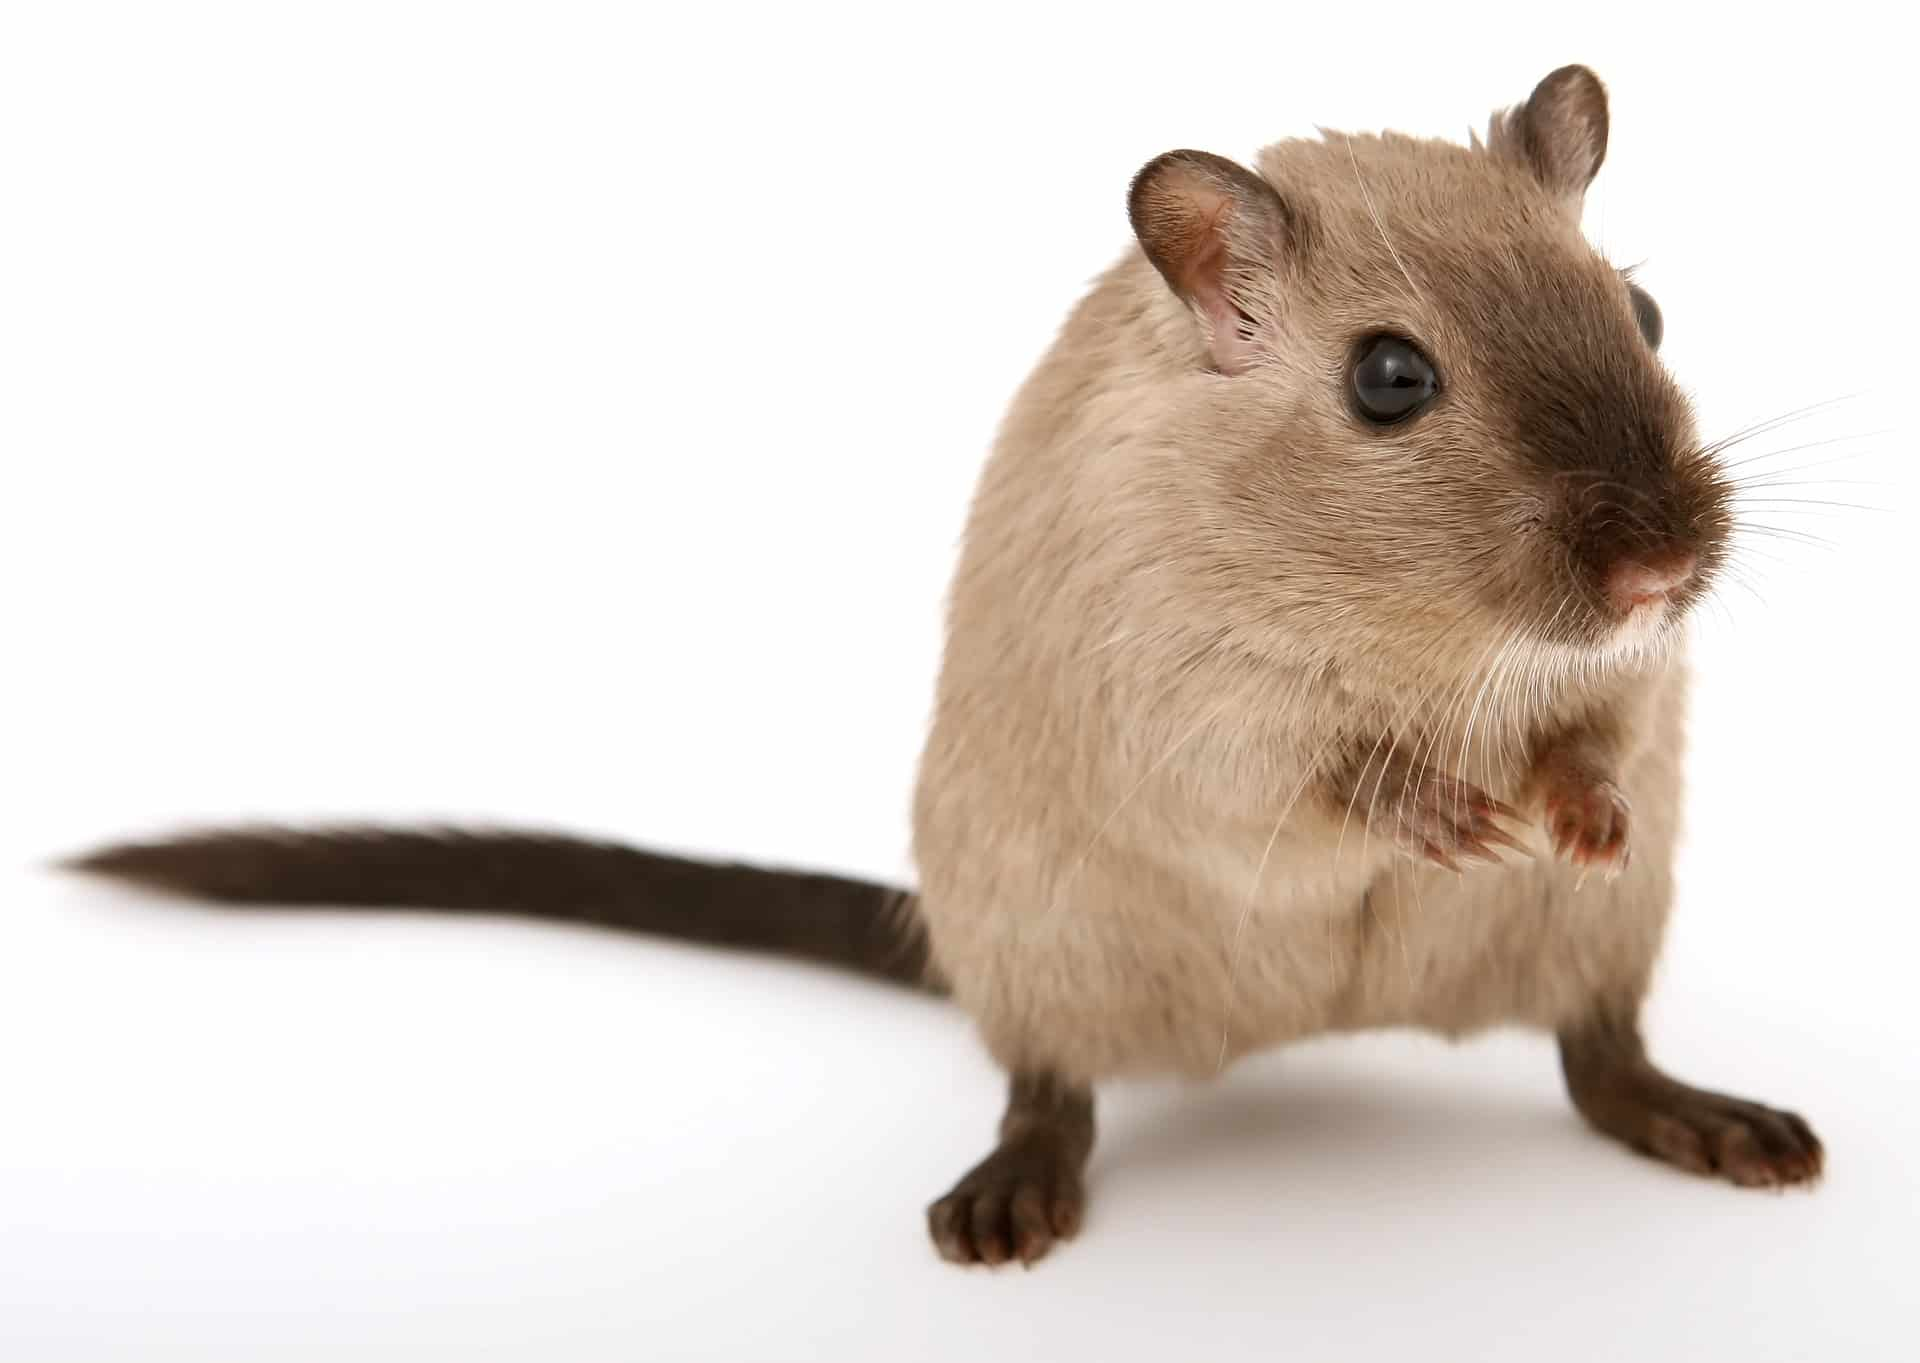 Rat Removal Wildlife Removal Services Of South Florida